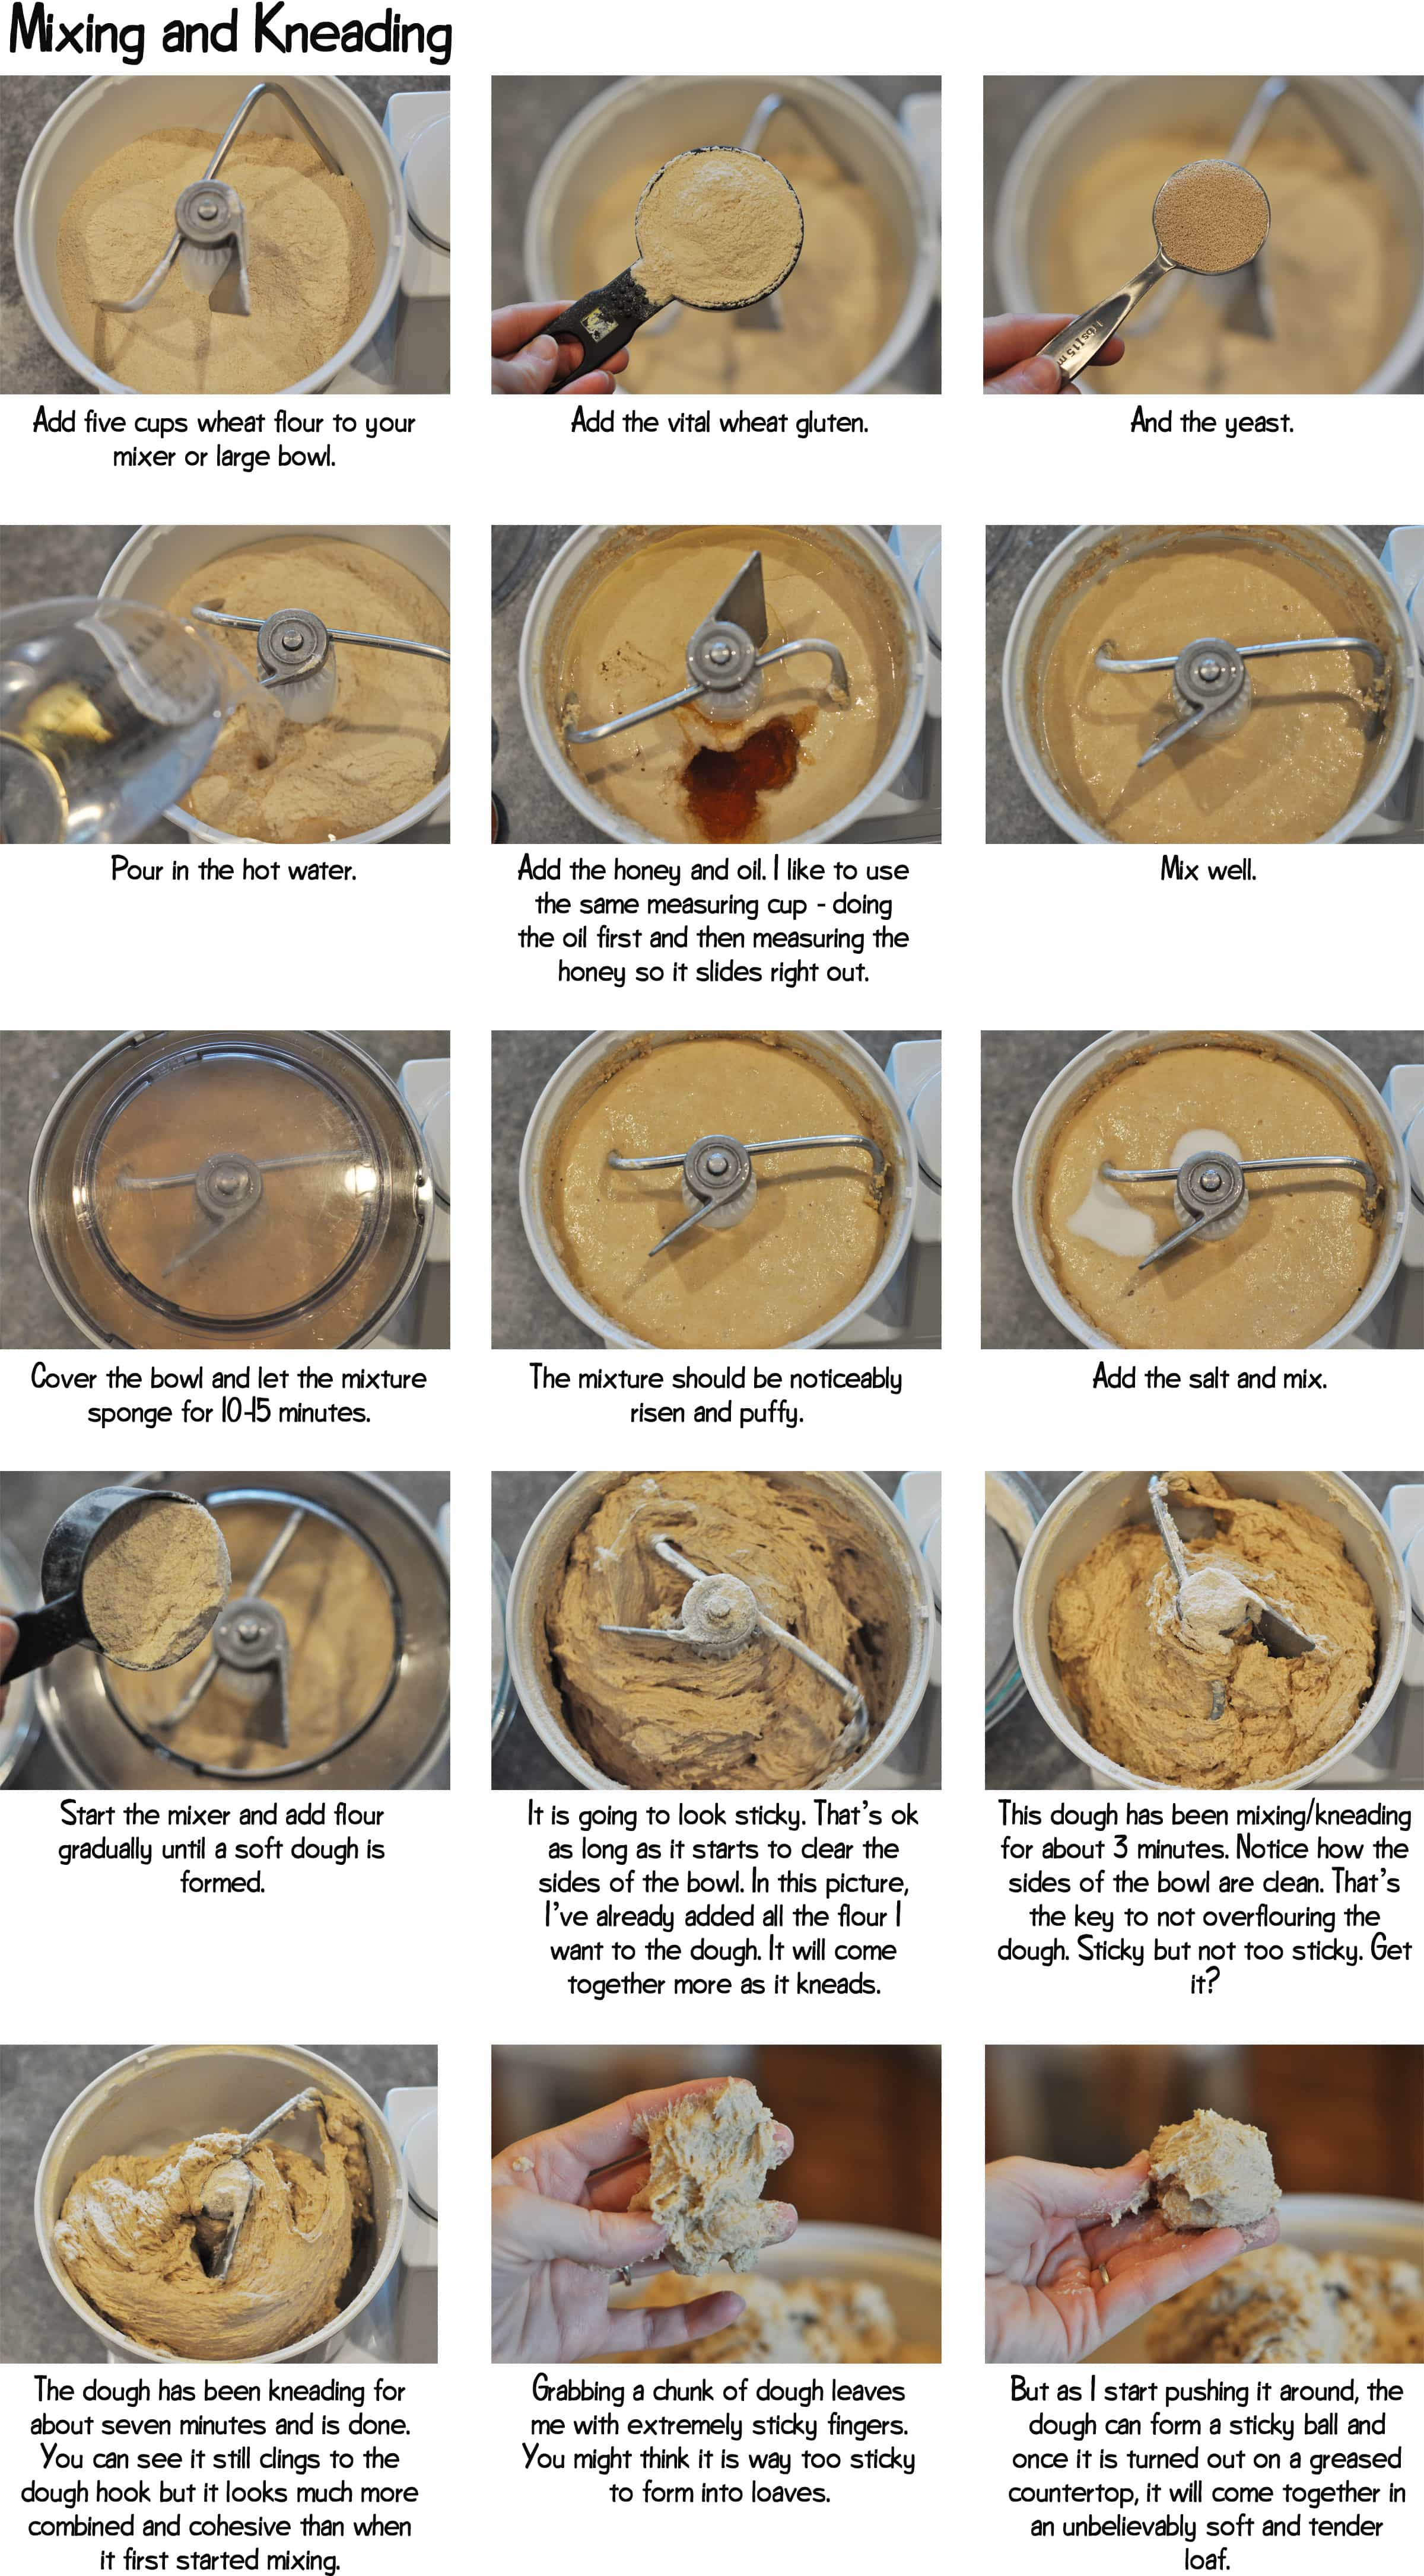 collage of step-by-step photos of whole wheat bread dough mixing and kneading in a Bosch